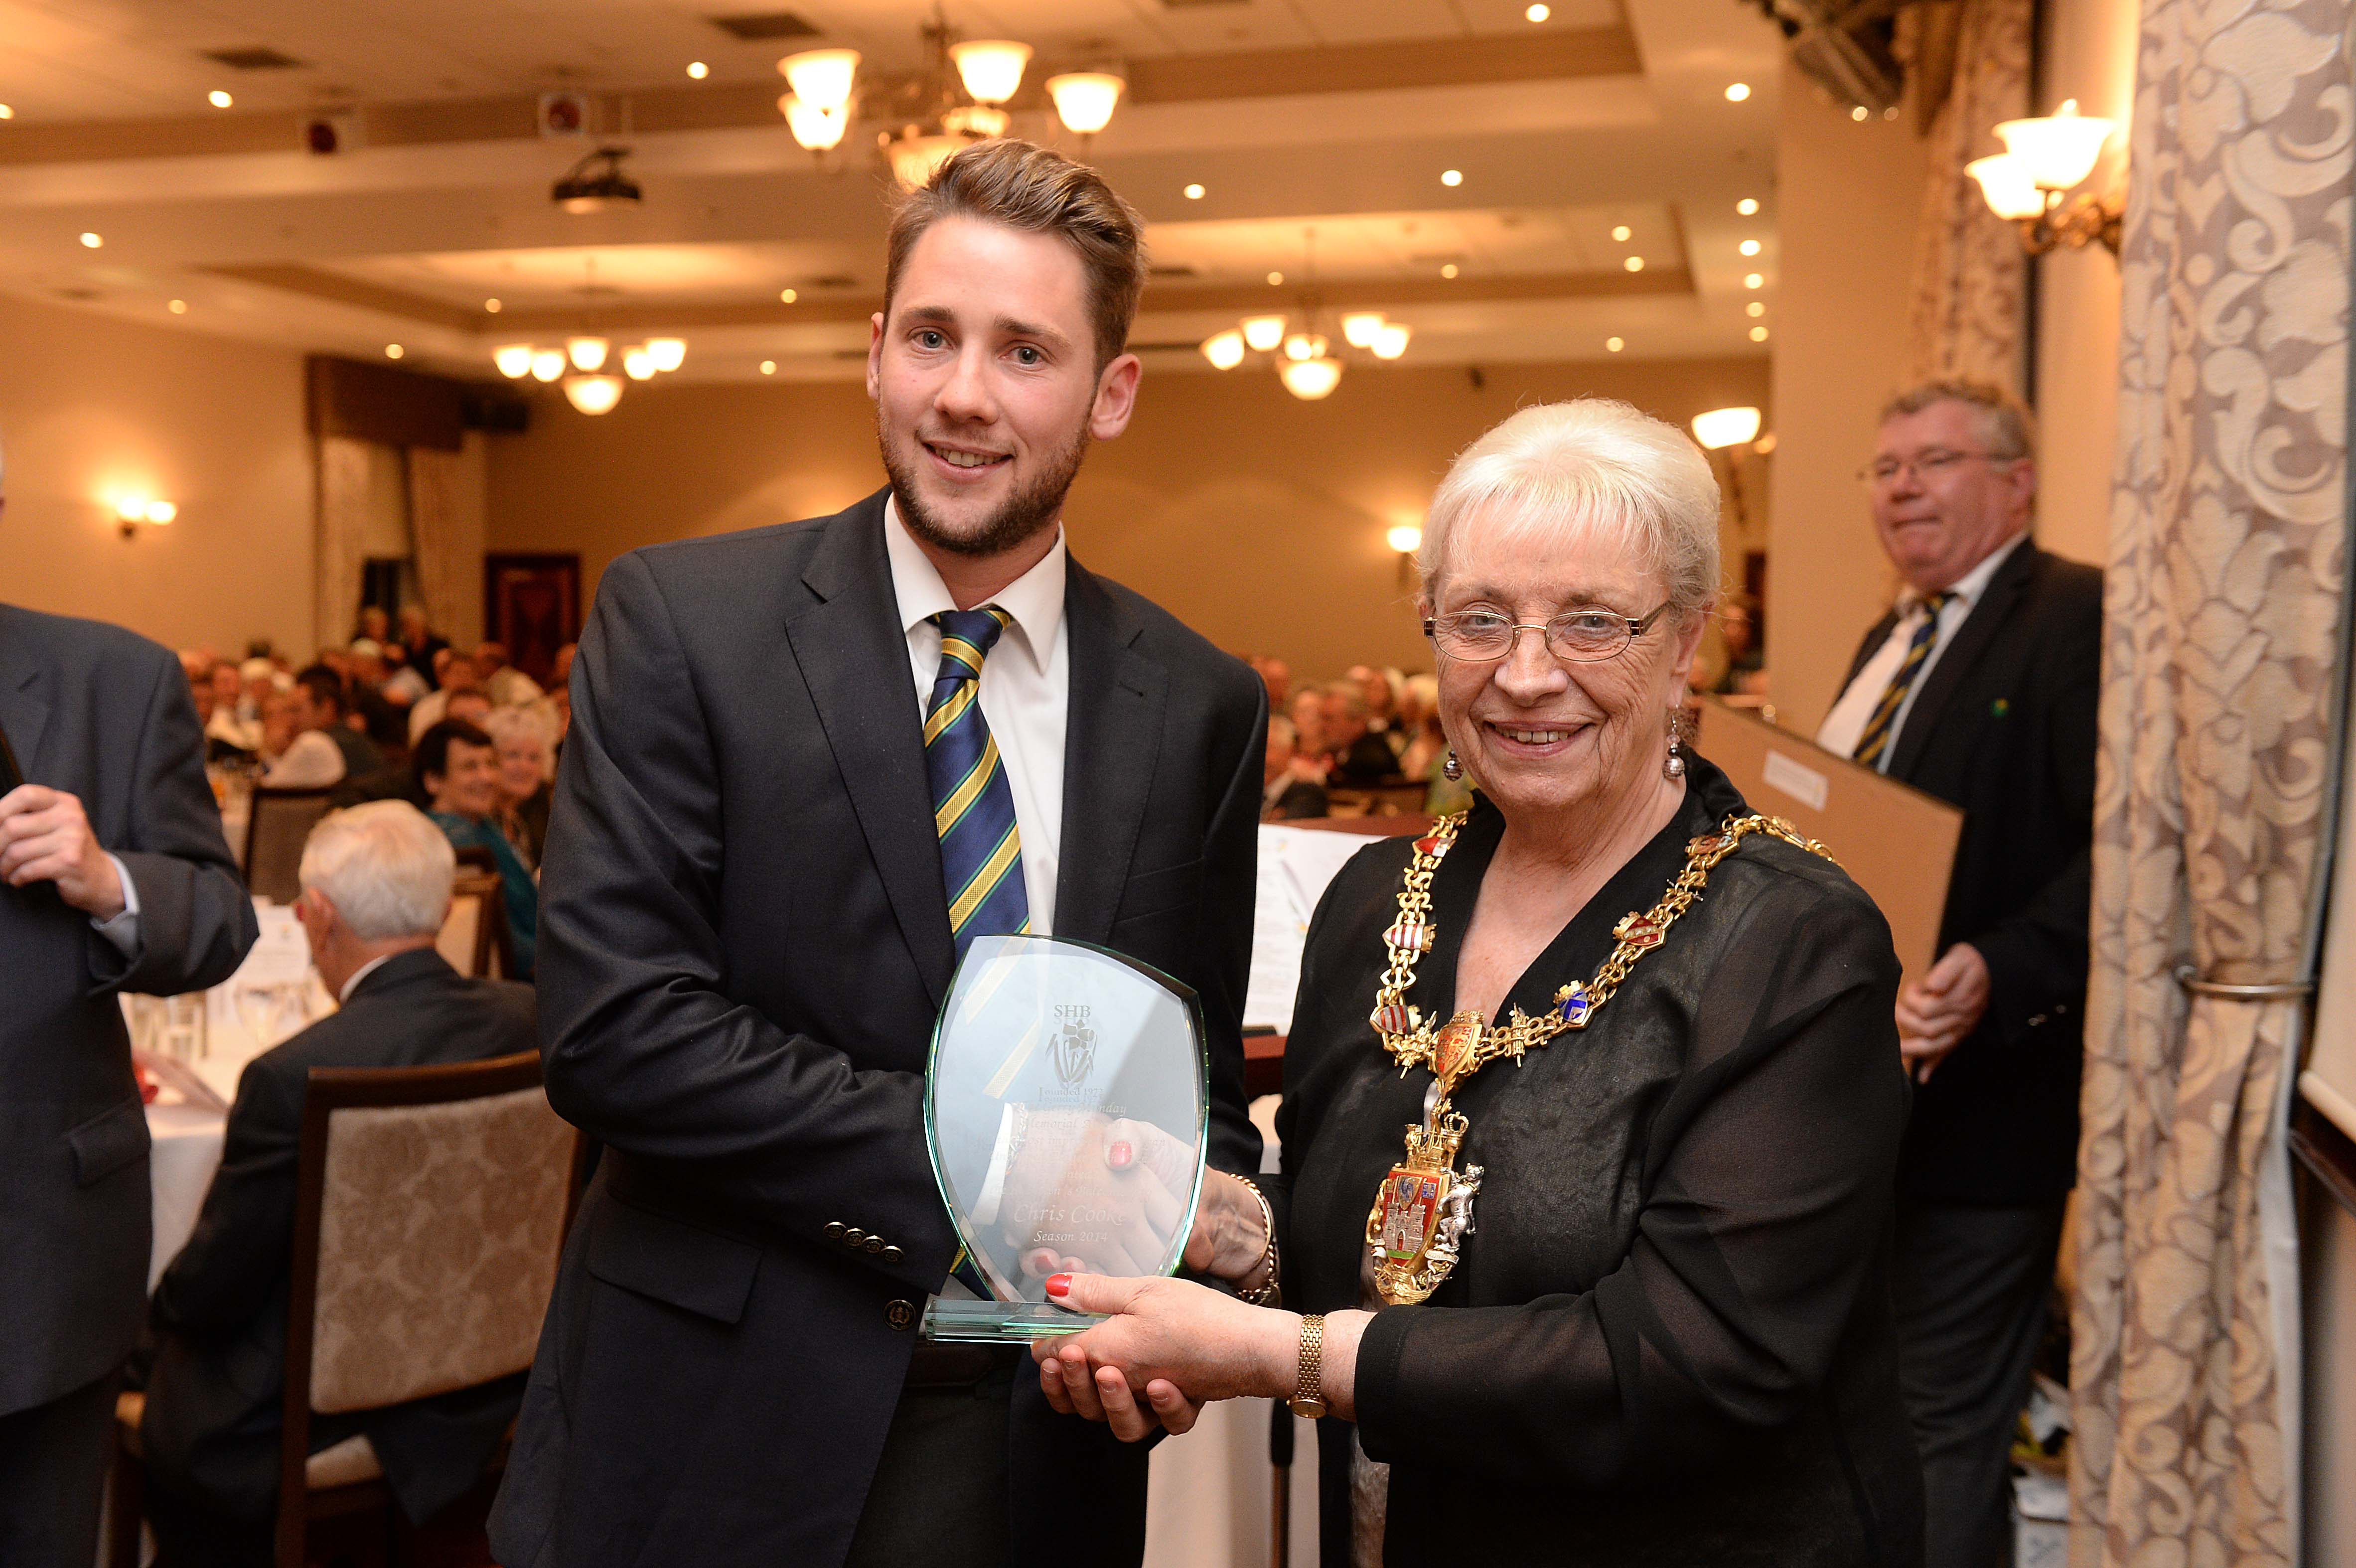 Chris Cooke receives his Gerry Munday Award from The Lord Mayor of Swansea - Councillor Ceinwen Thomas.